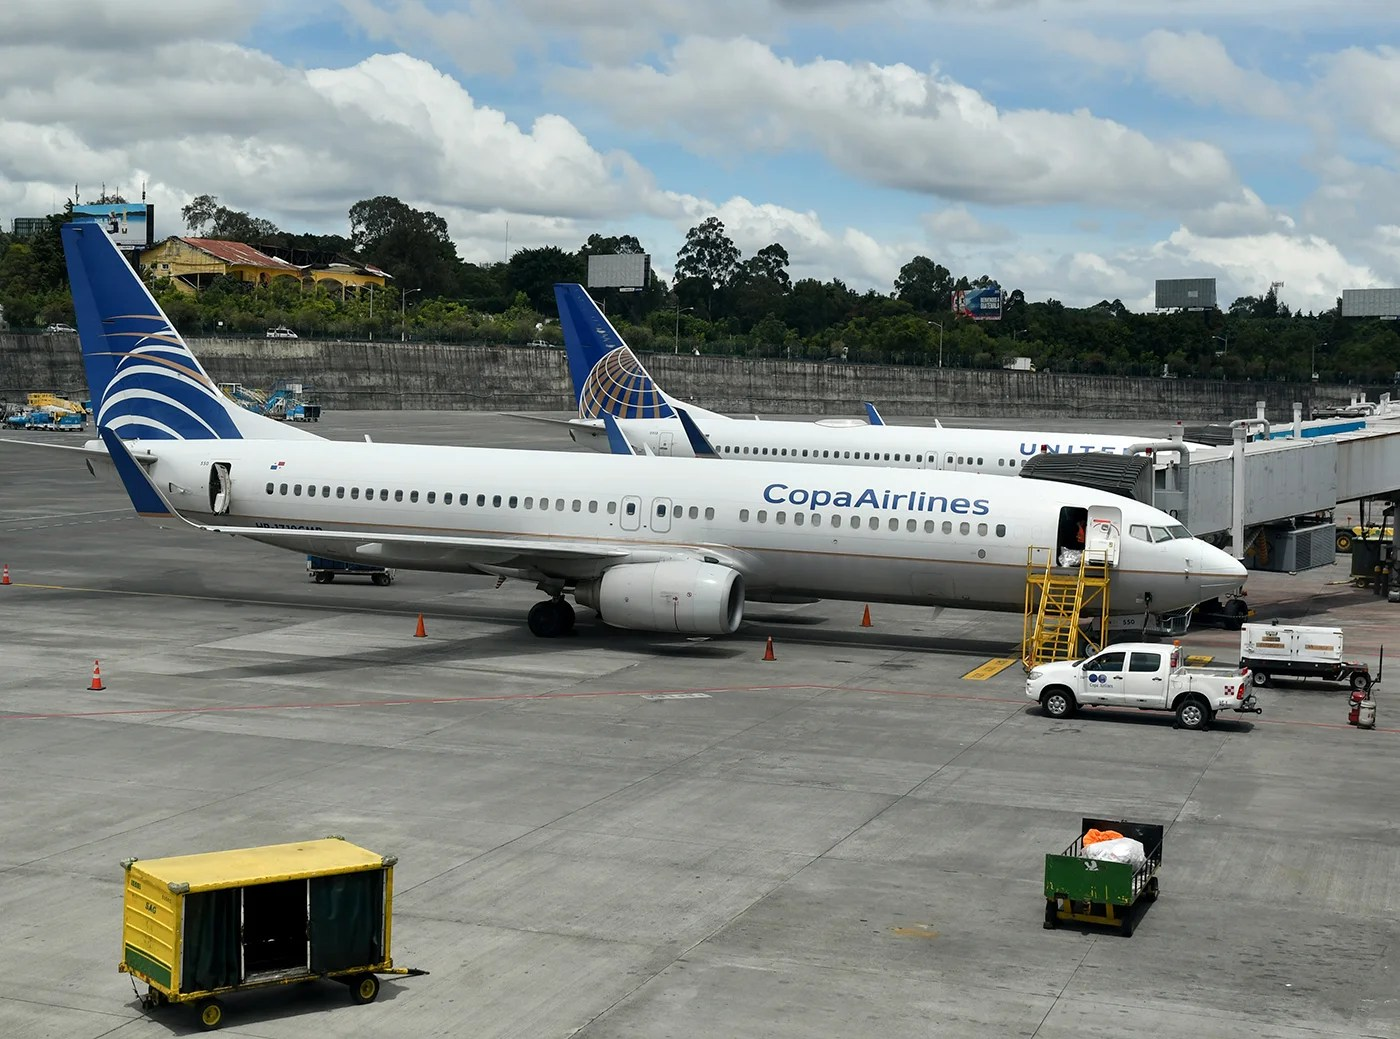 new concept 51193 aa175 Two United and Copa 737-800s side by side at the Panama airport (Photo